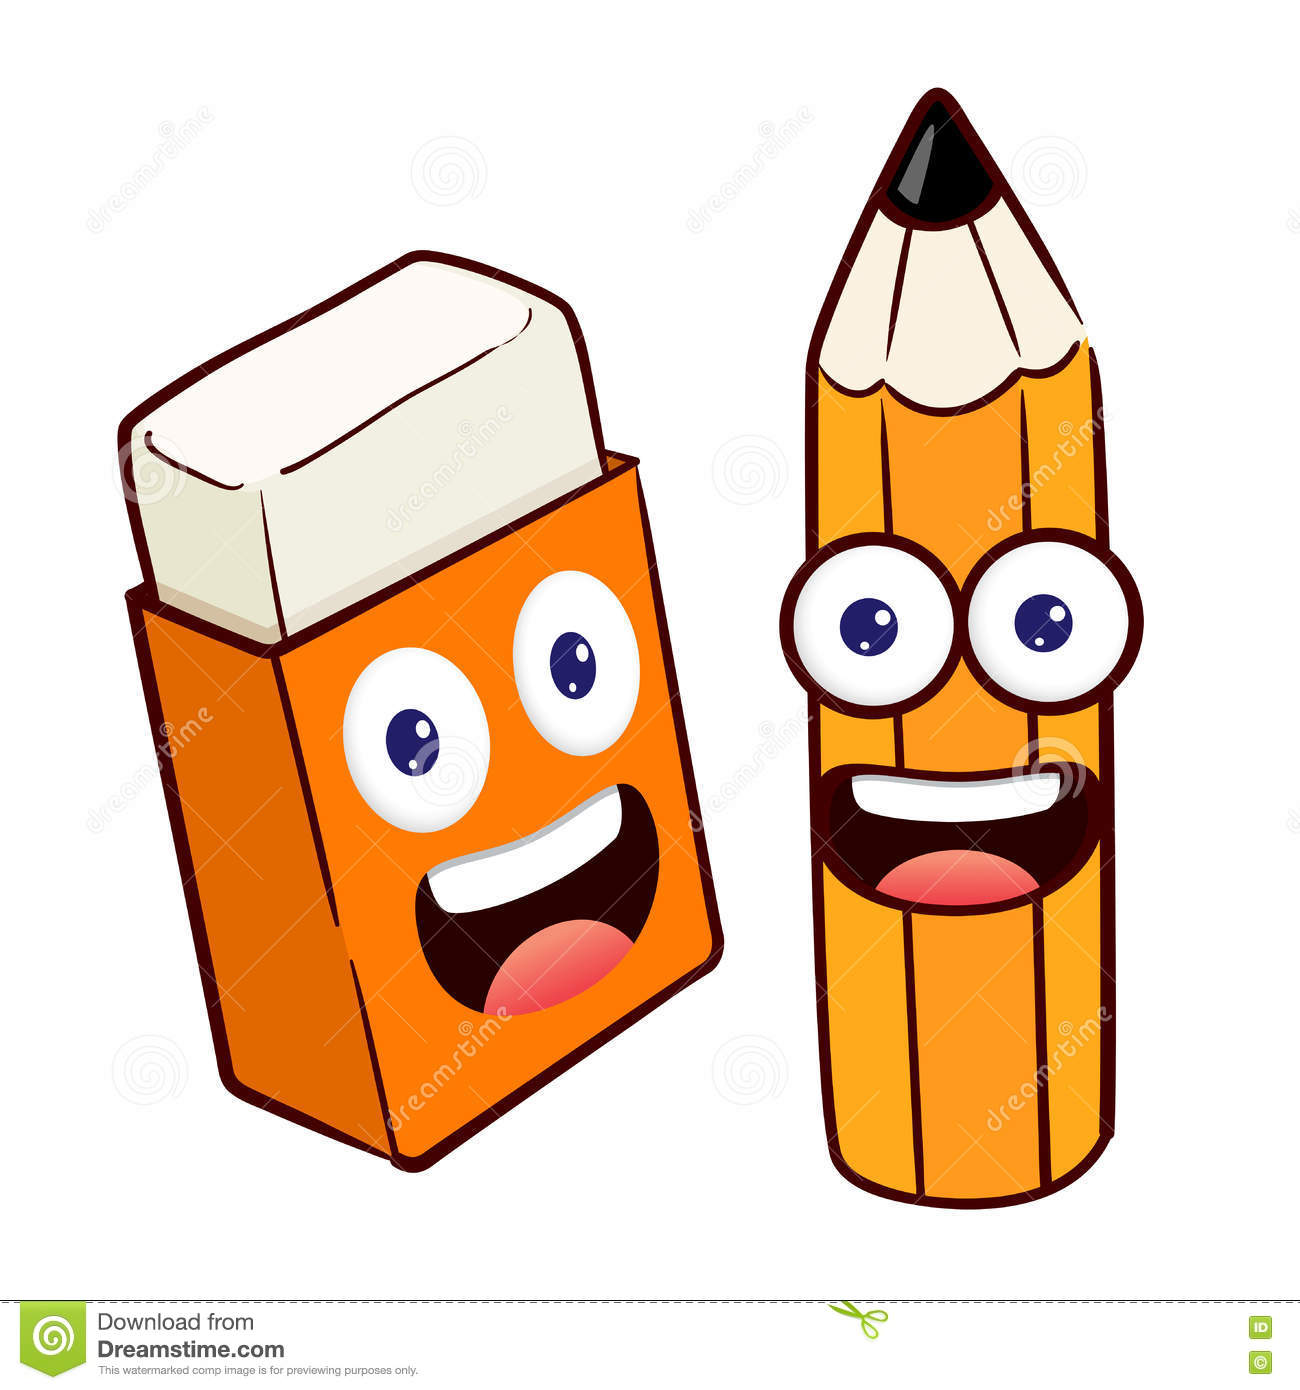 Pencil And Eraser Cartoon Character Stock Vector - Image: 71742603